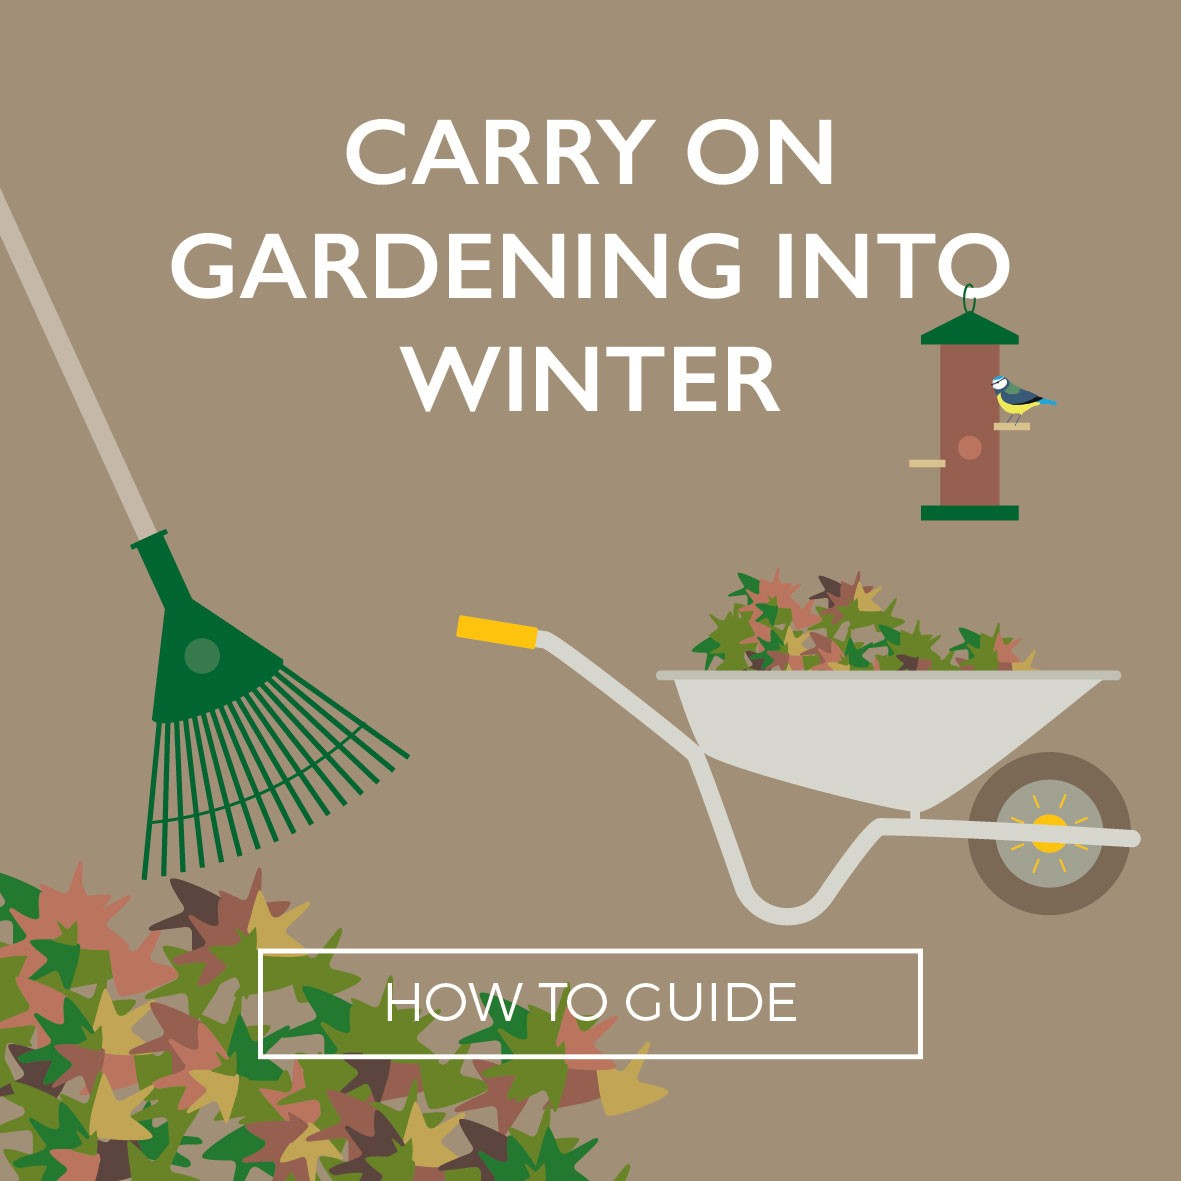 Carry on Gardening into winter